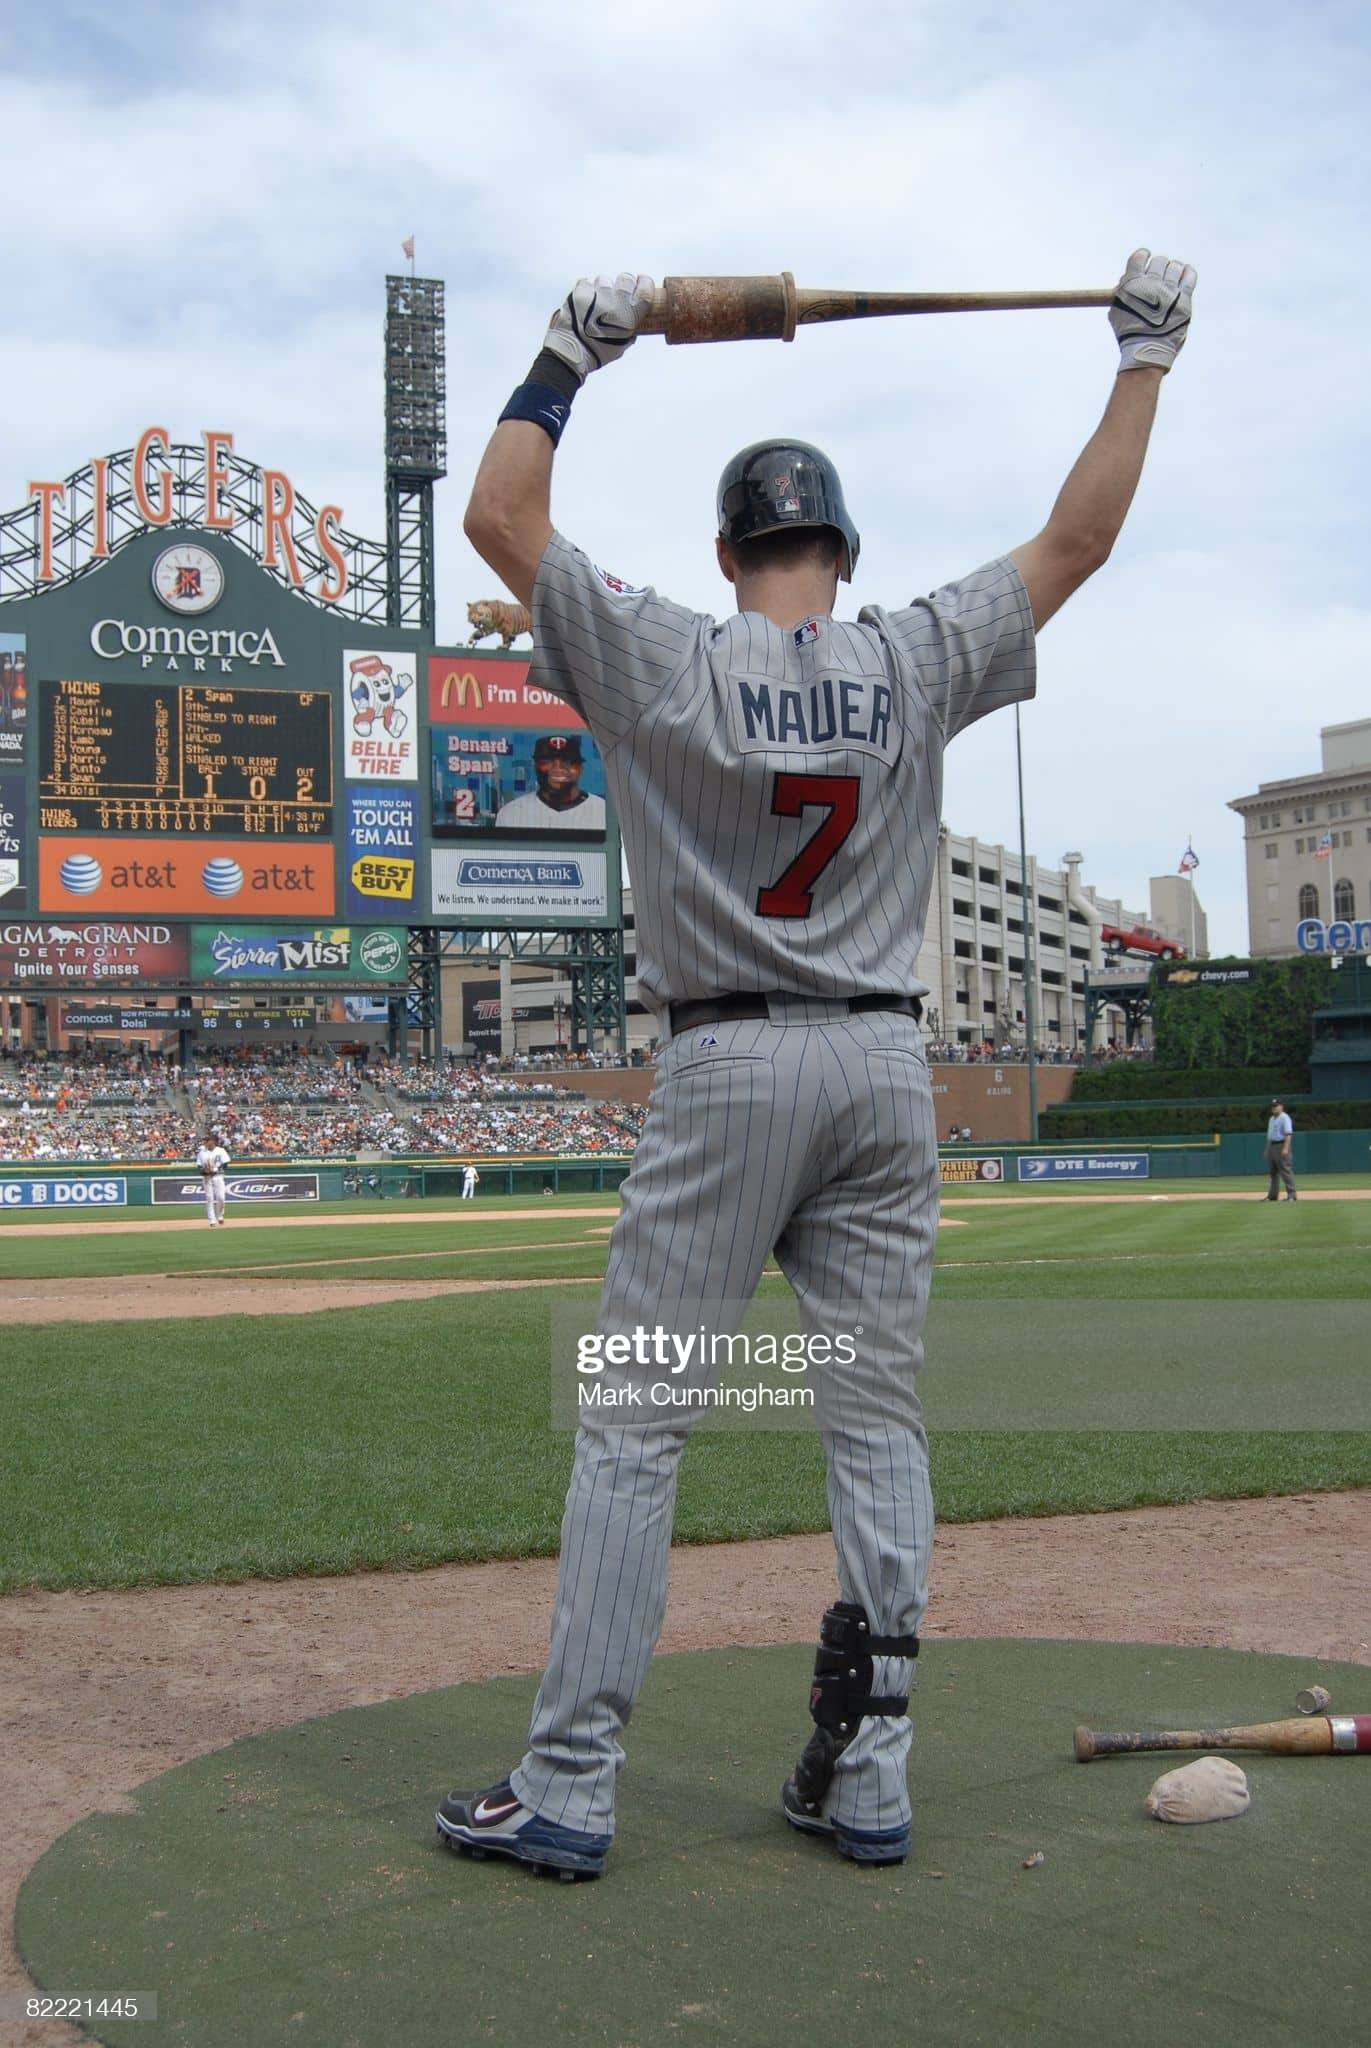 Joe Mauer in the on deck circle in 2008 in Detroit